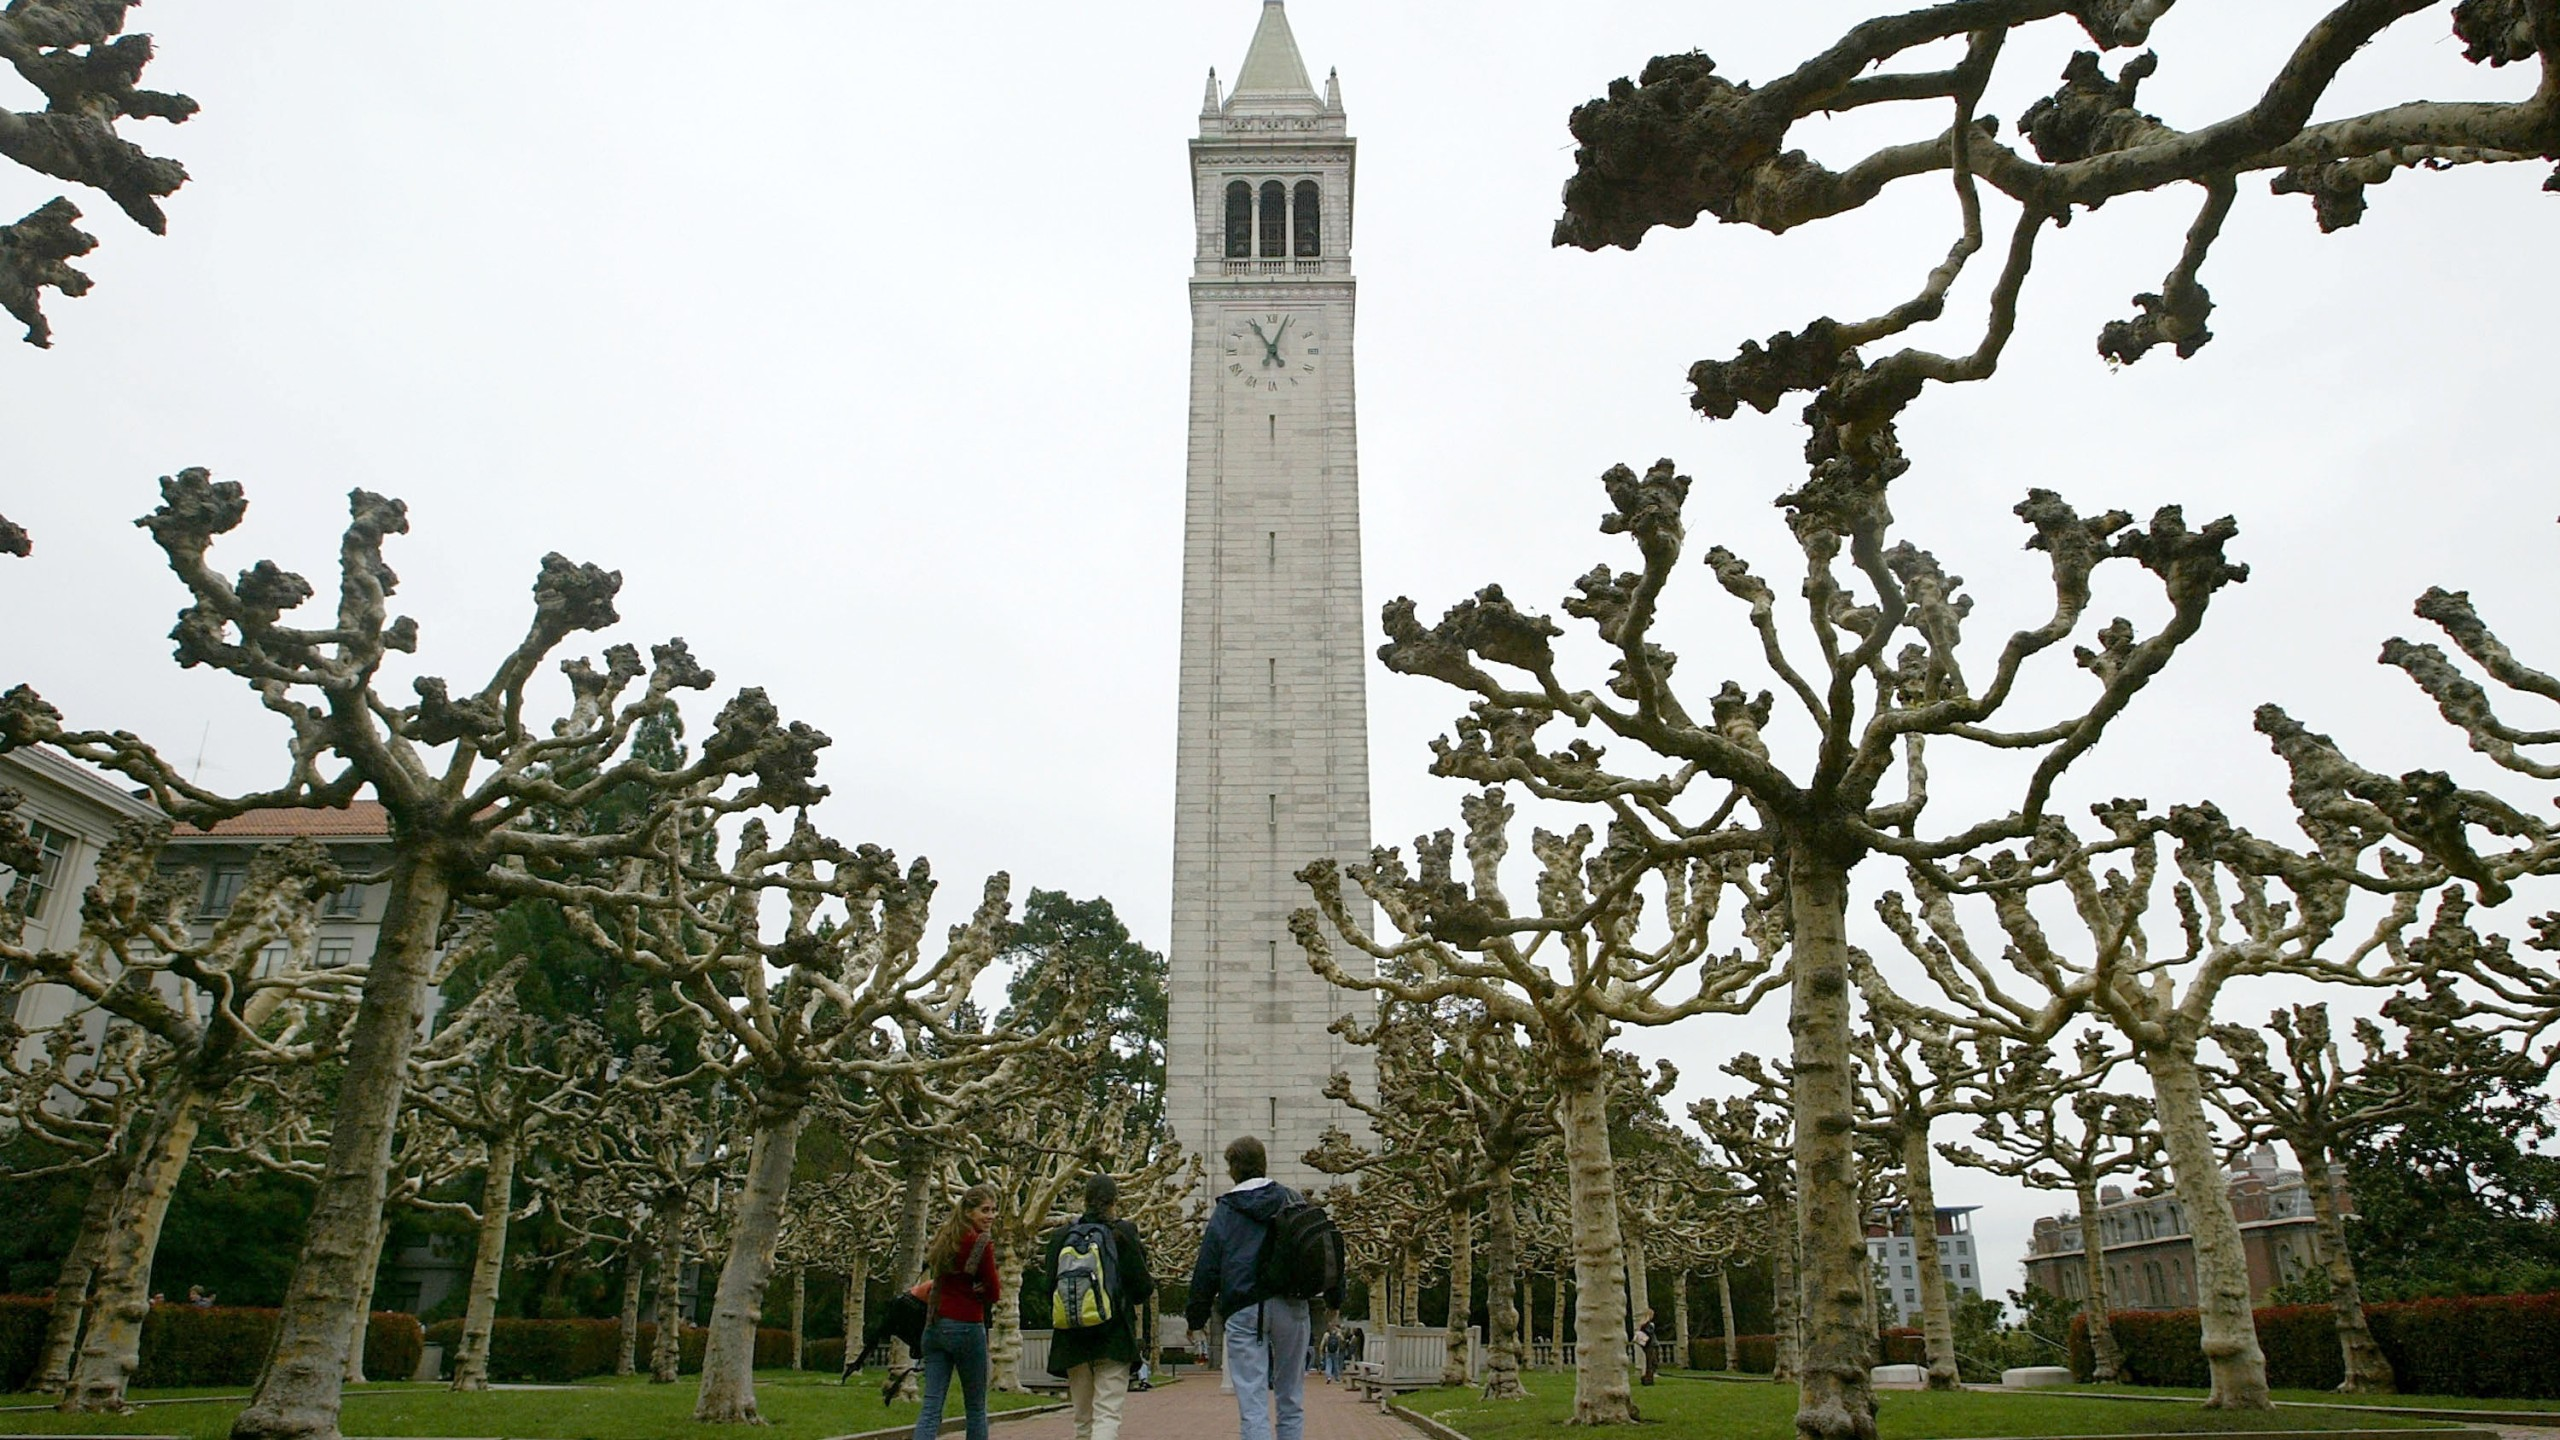 Students walk near Sather Tower on the University of California at Berkeley campus on Feb. 24, 2005. in Berkeley, California. (Credit: Justin Sullivan/Getty Images)